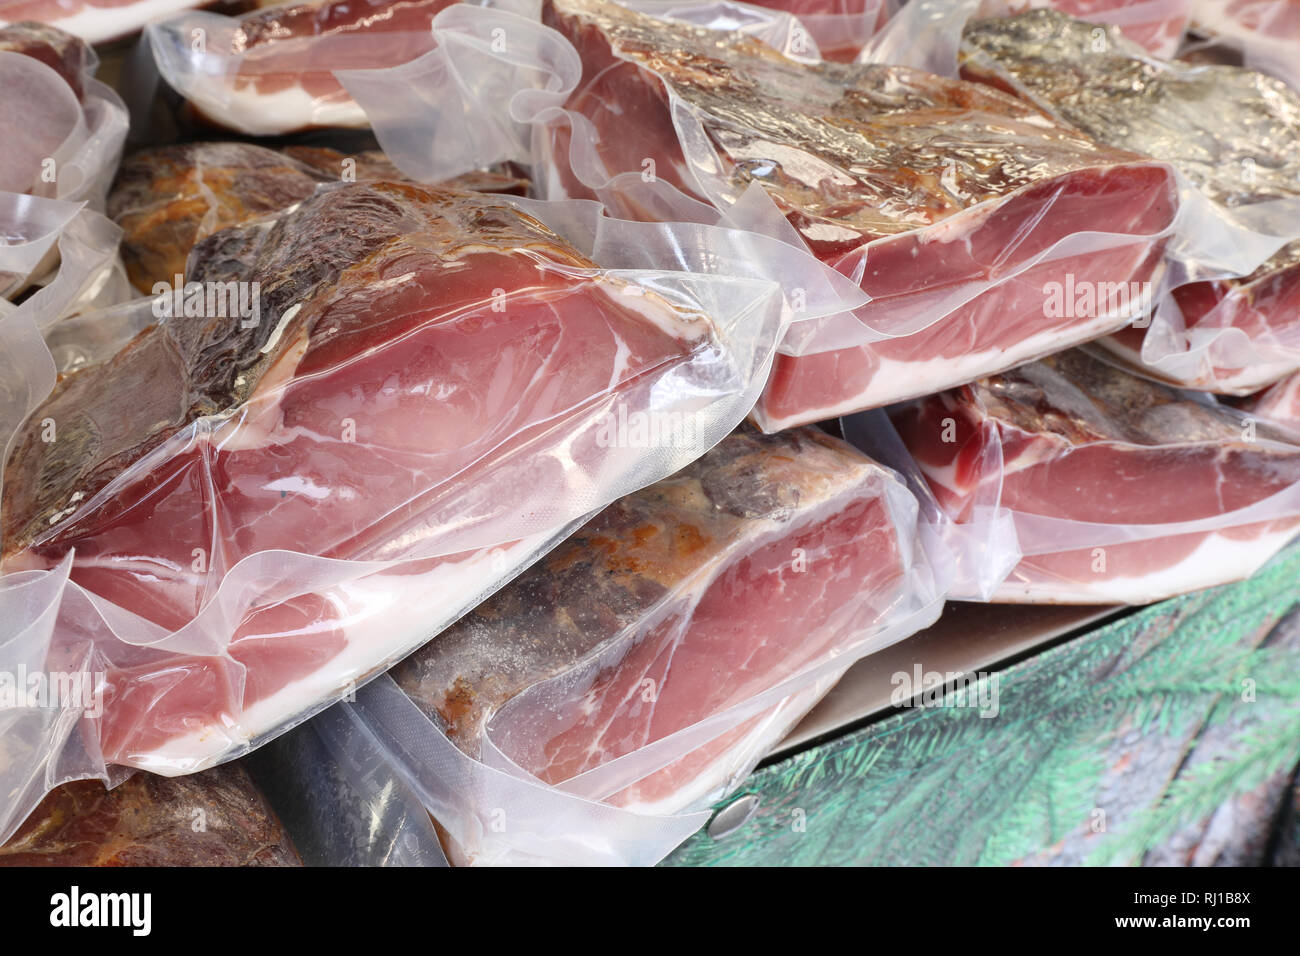 vacuum-packed smoked meats for retail sale in the local market - Stock Image